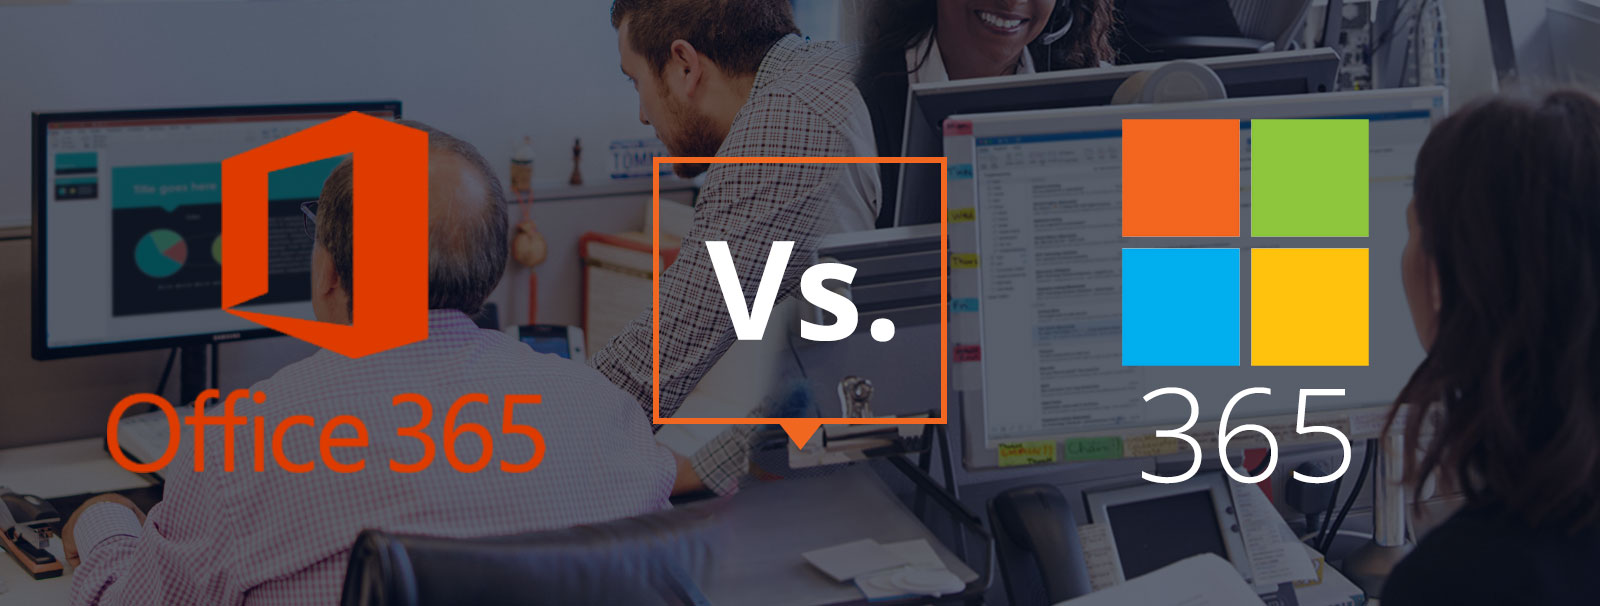 Office 365 vs. Microsoft 365